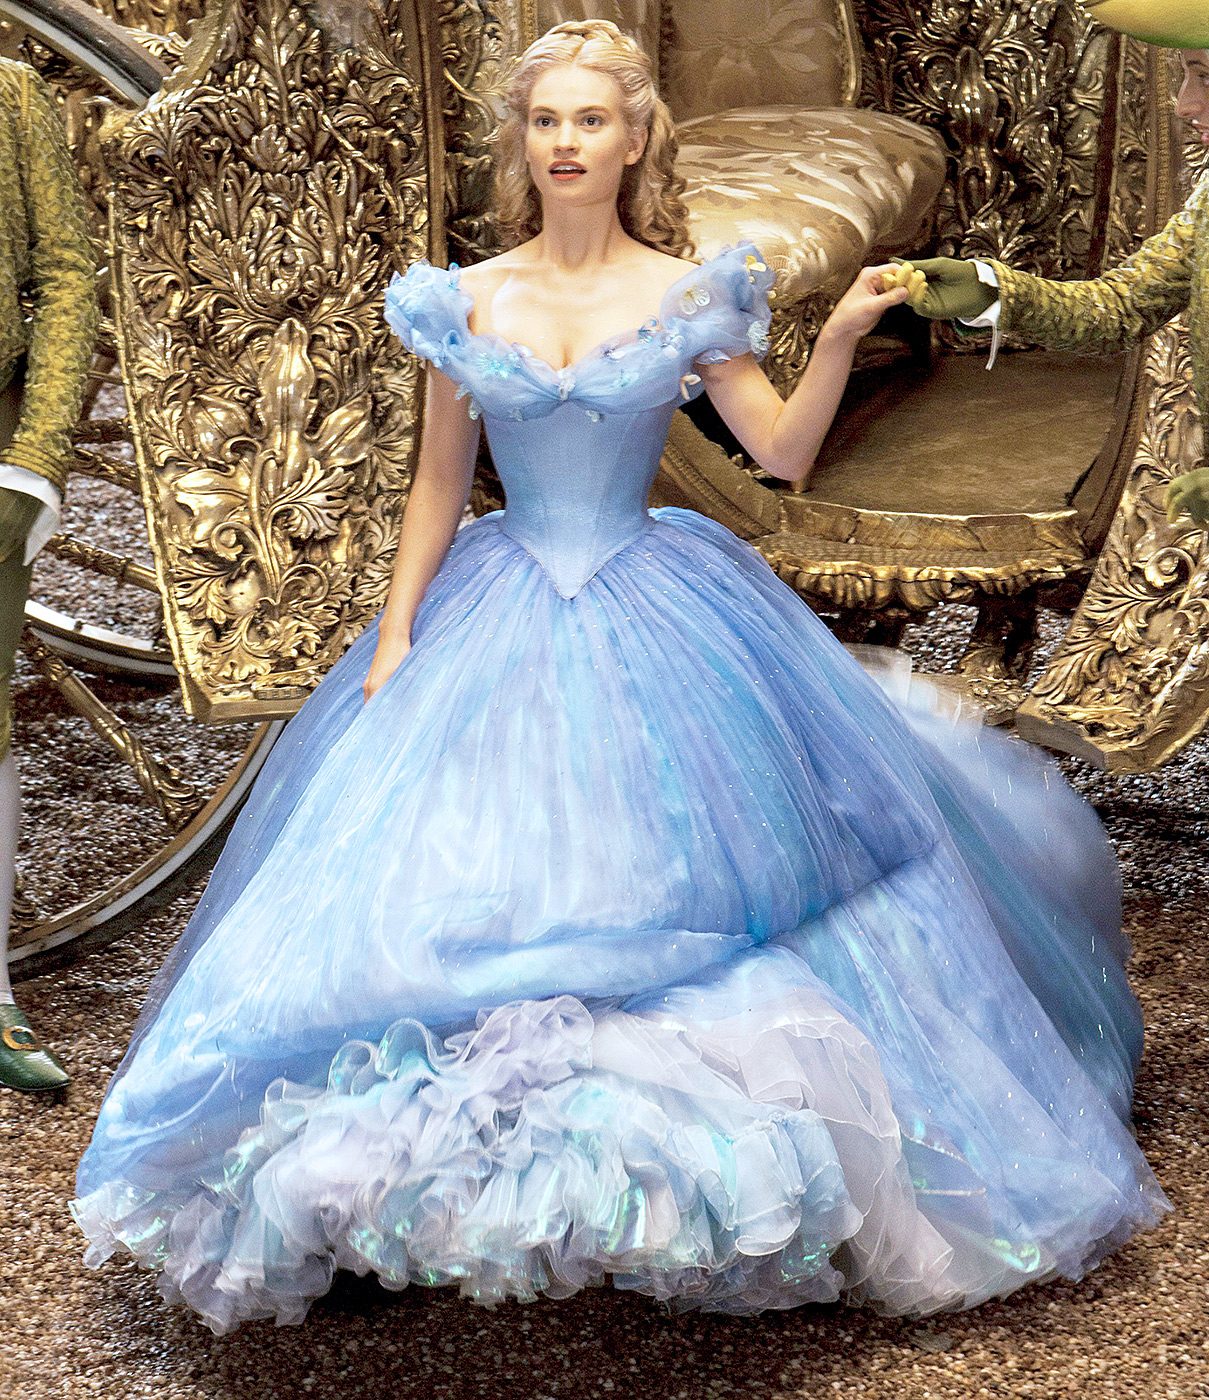 For the 2015 live-action Disney remake of Cinderella , the Downton Abbey star slipped into the famous glass slippers.